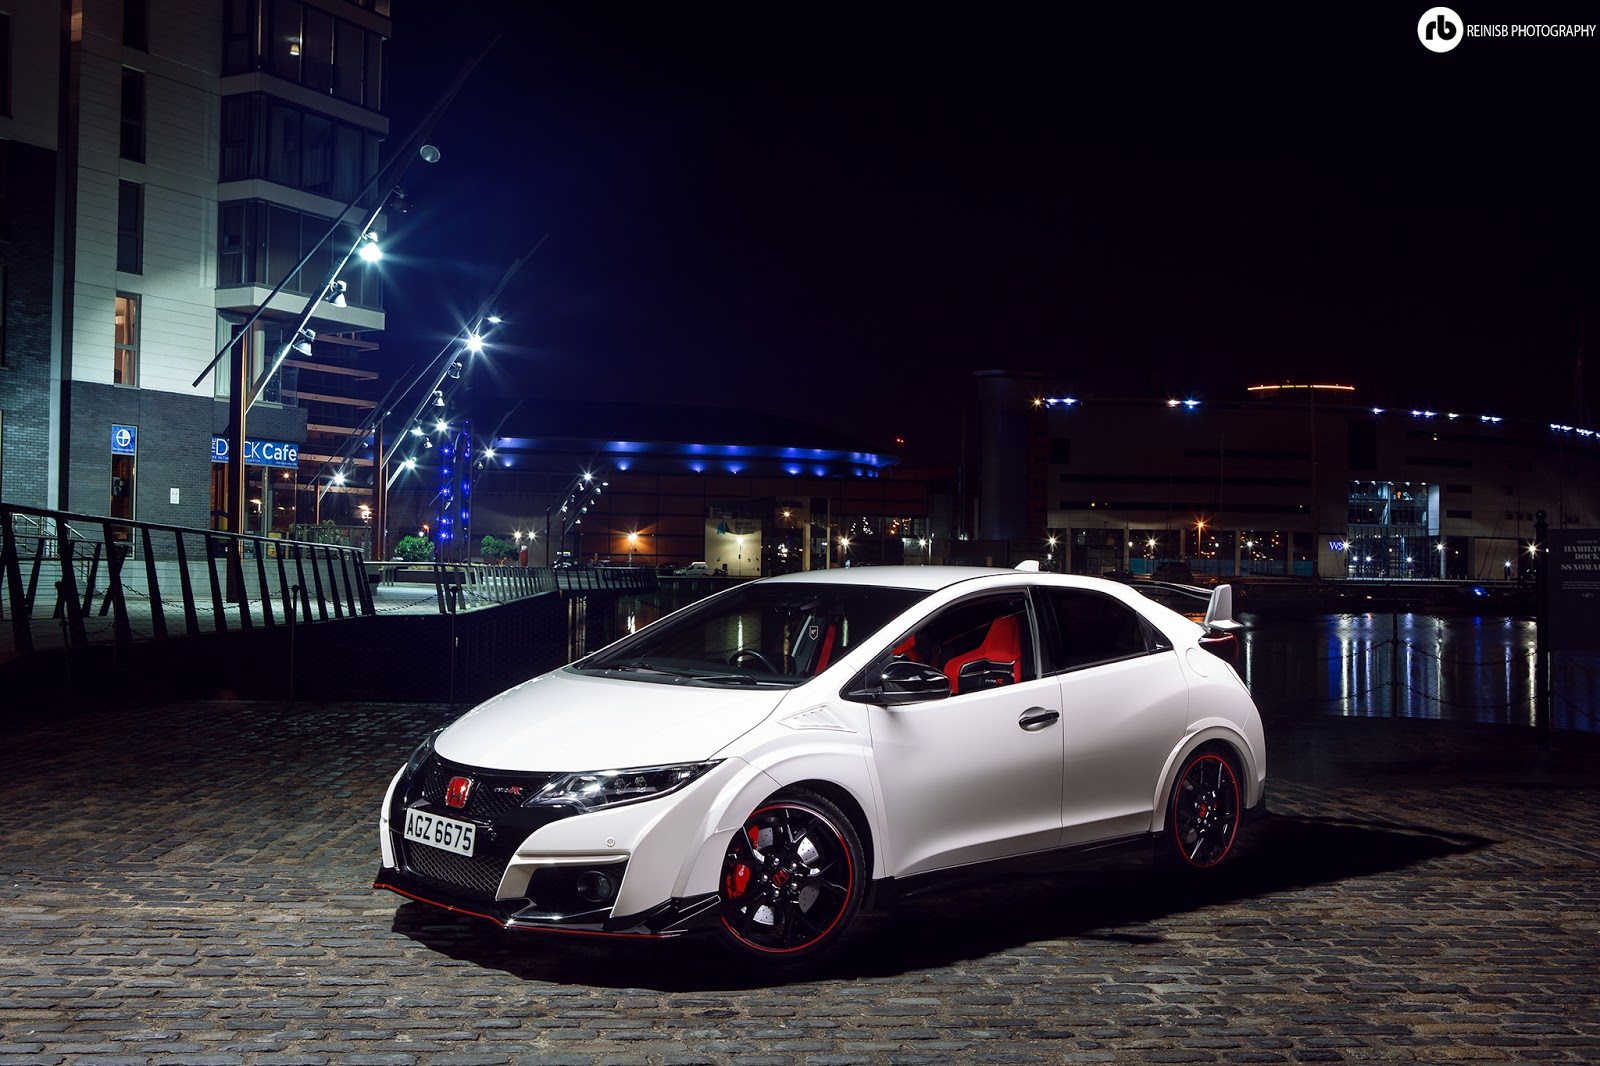 reinis babrovskis photography honda civic type r fk2. Black Bedroom Furniture Sets. Home Design Ideas